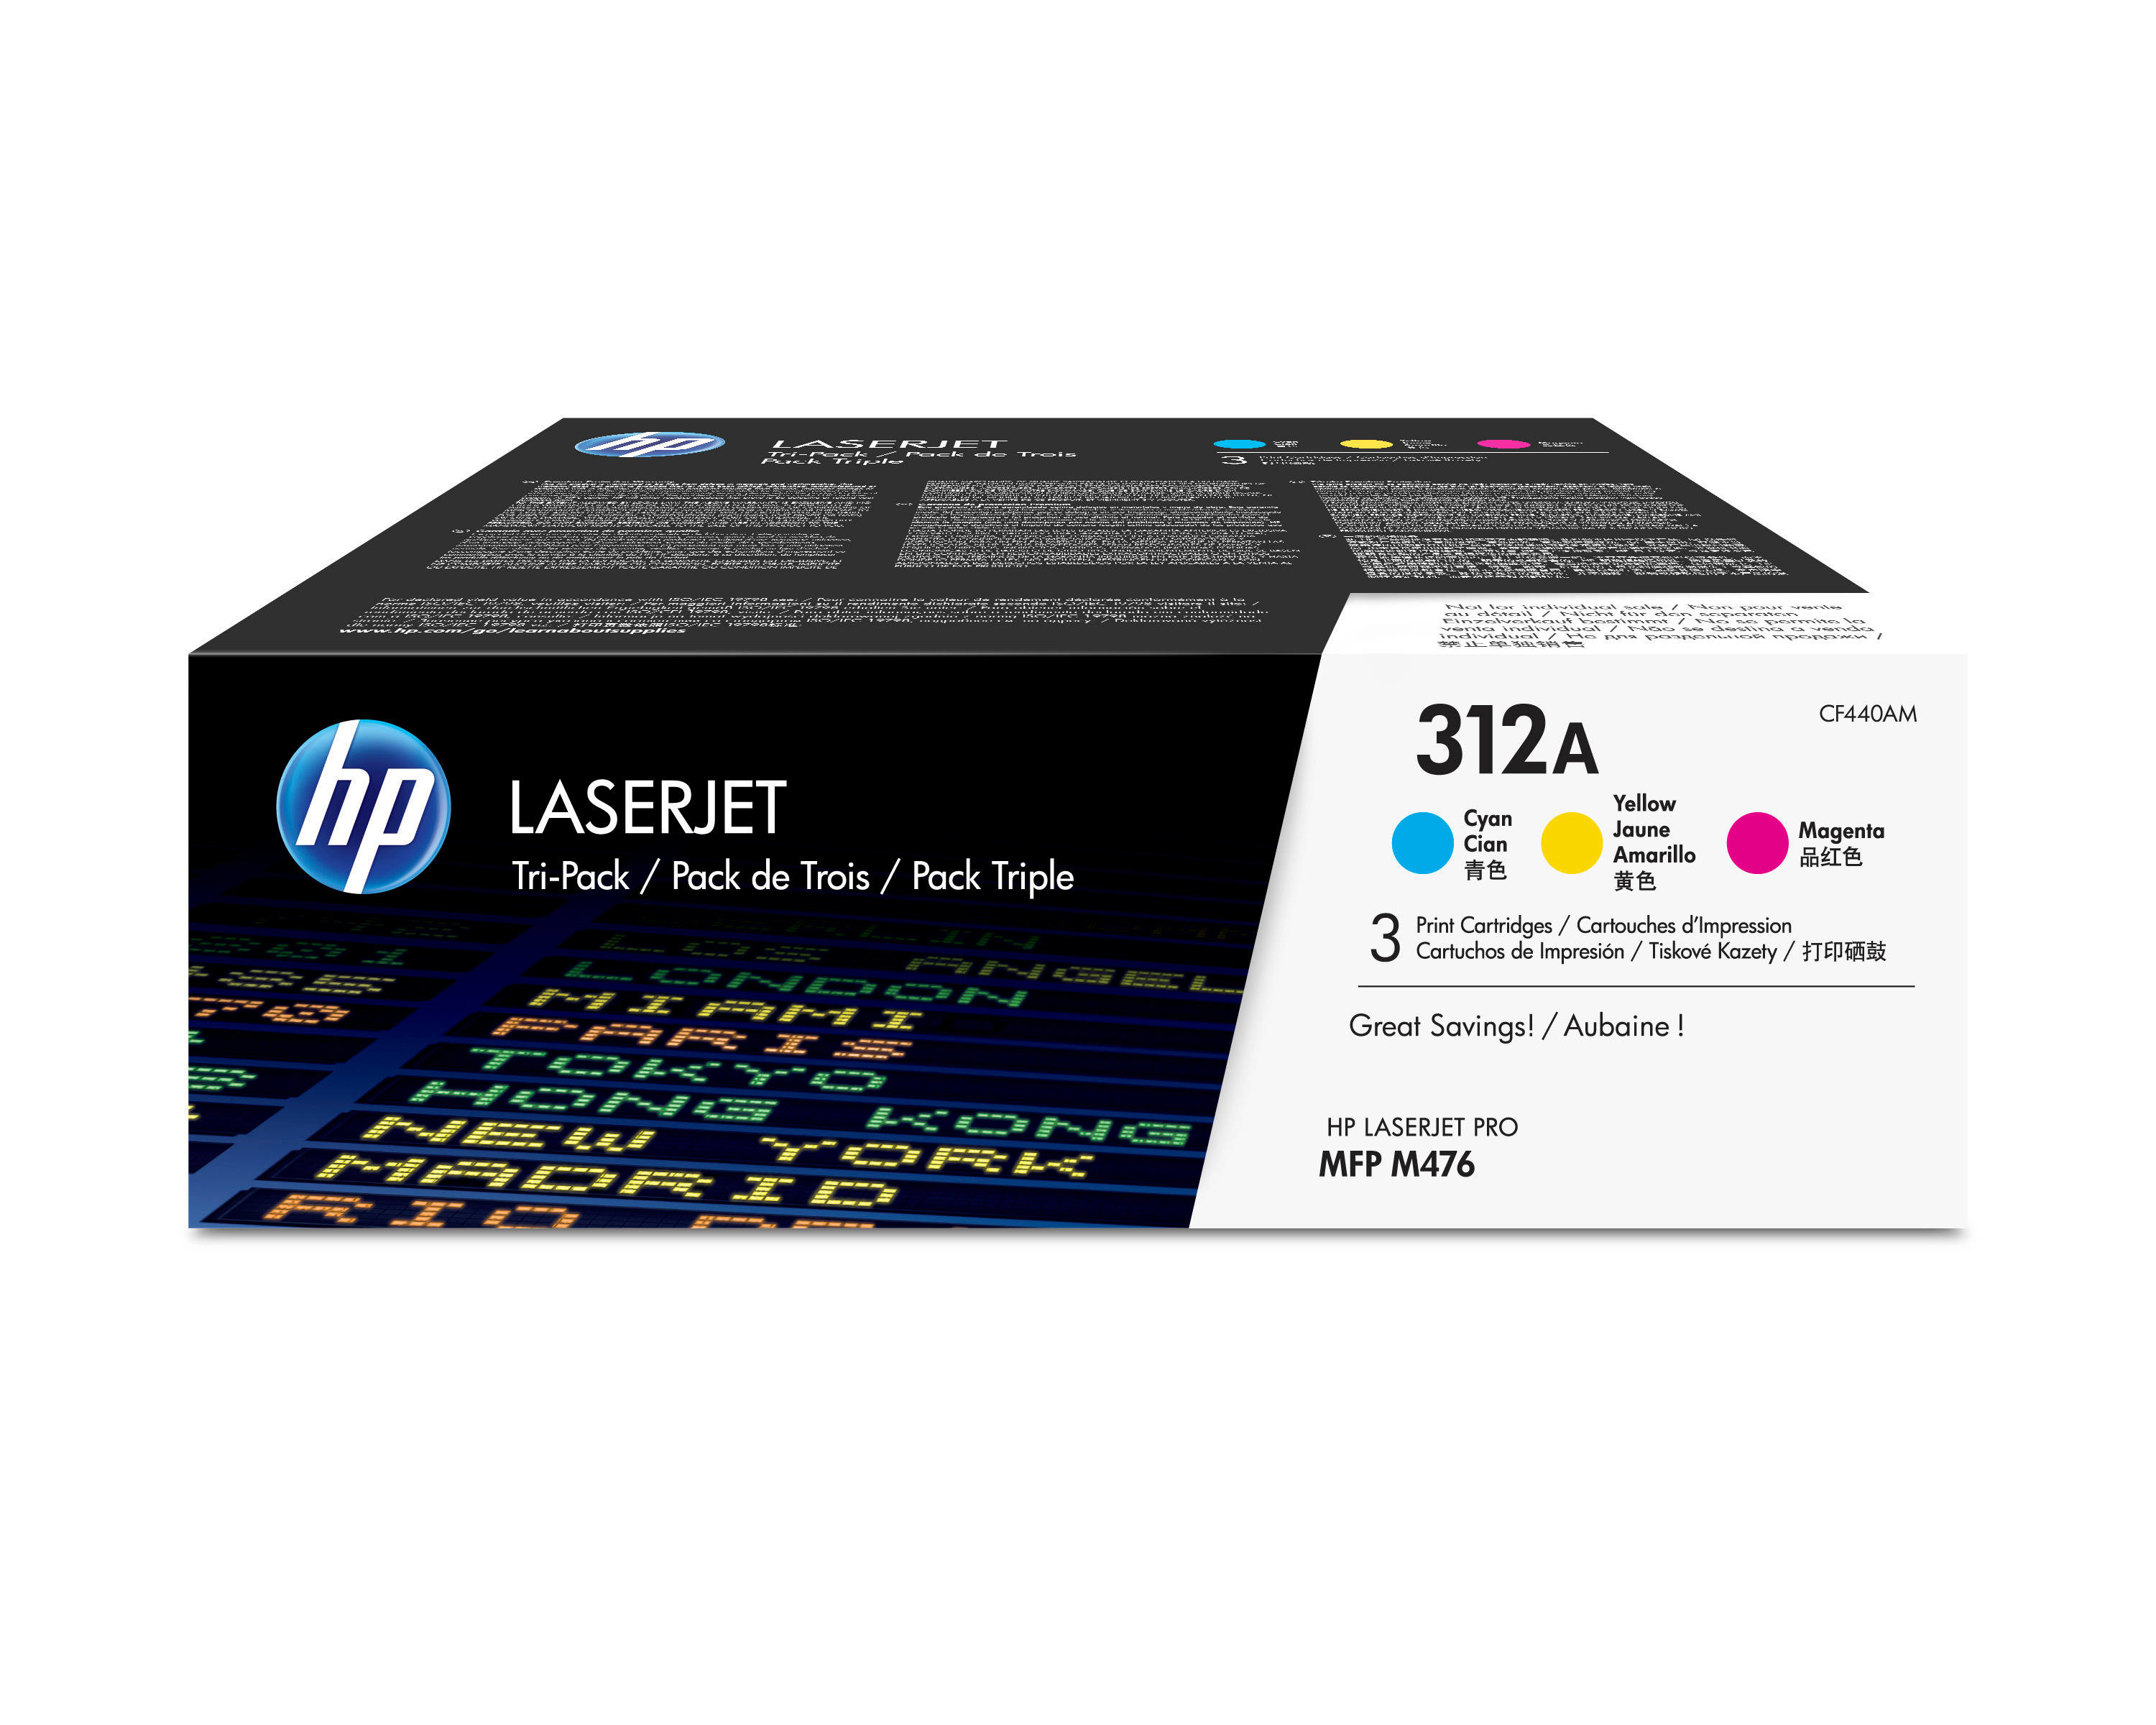 Hp - Laserjet Supply (pl5t) Mvs  Toner Cartridge 312a C/y/m          Triple Pack                         Cf440am